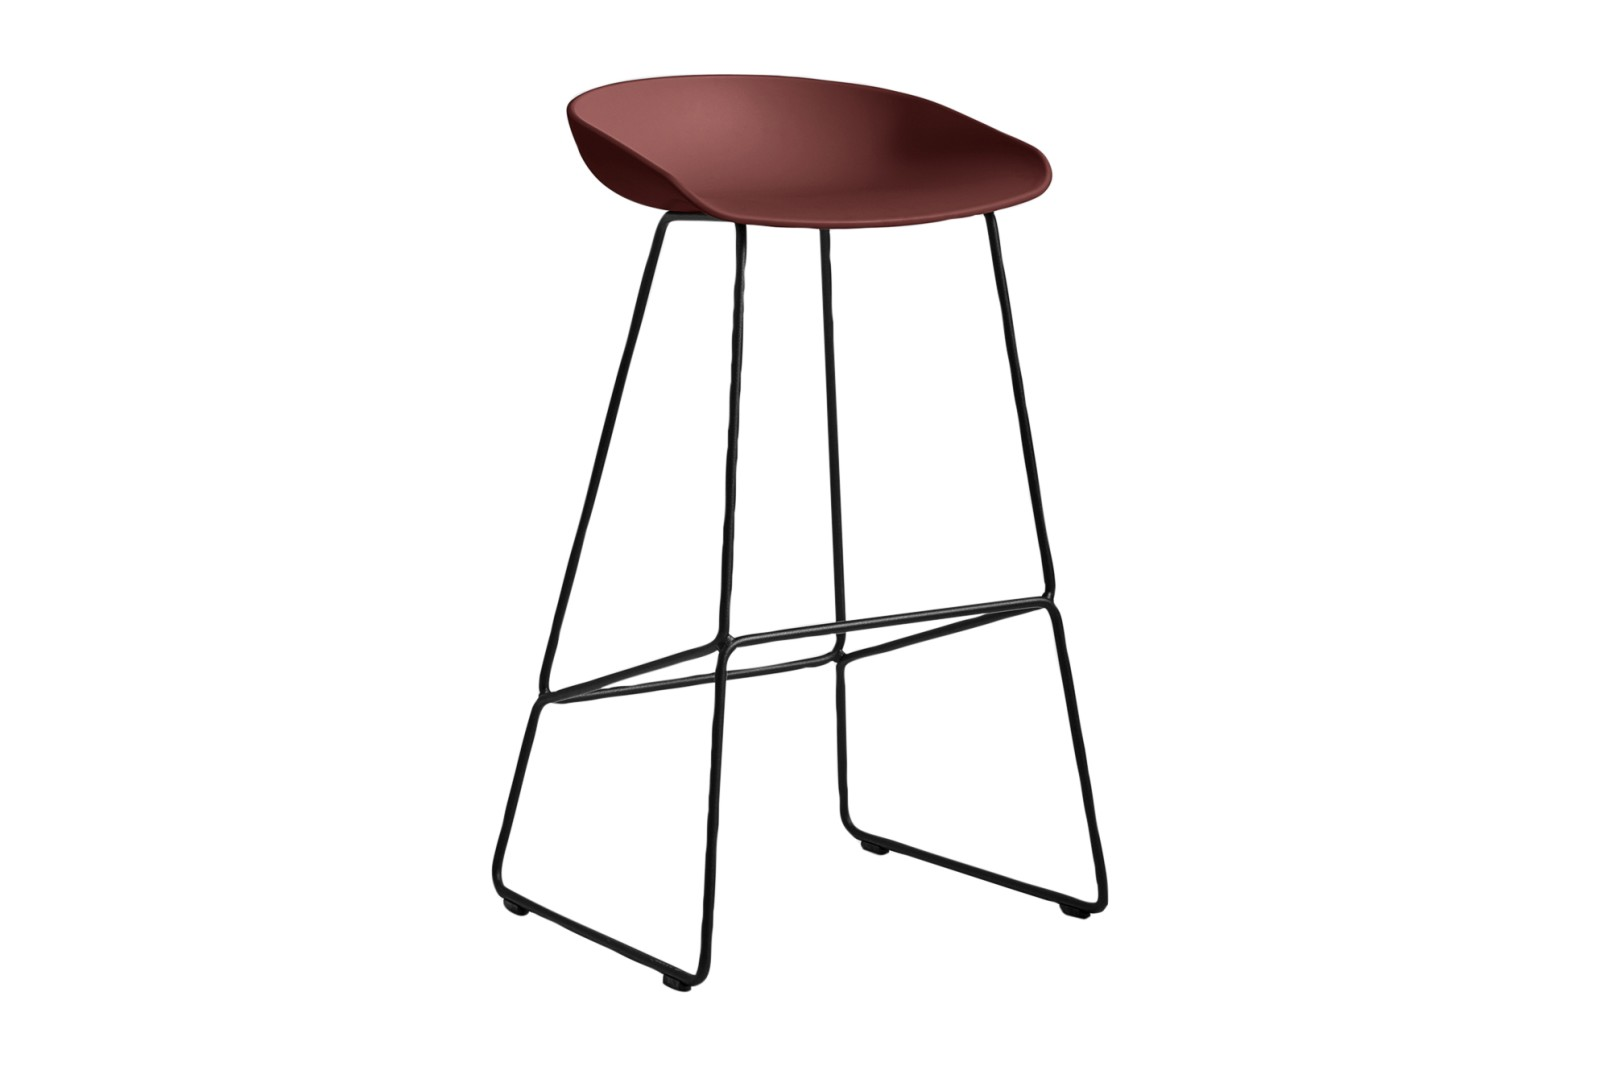 About A Stool AAS38 Brick Seat and Black Base, High